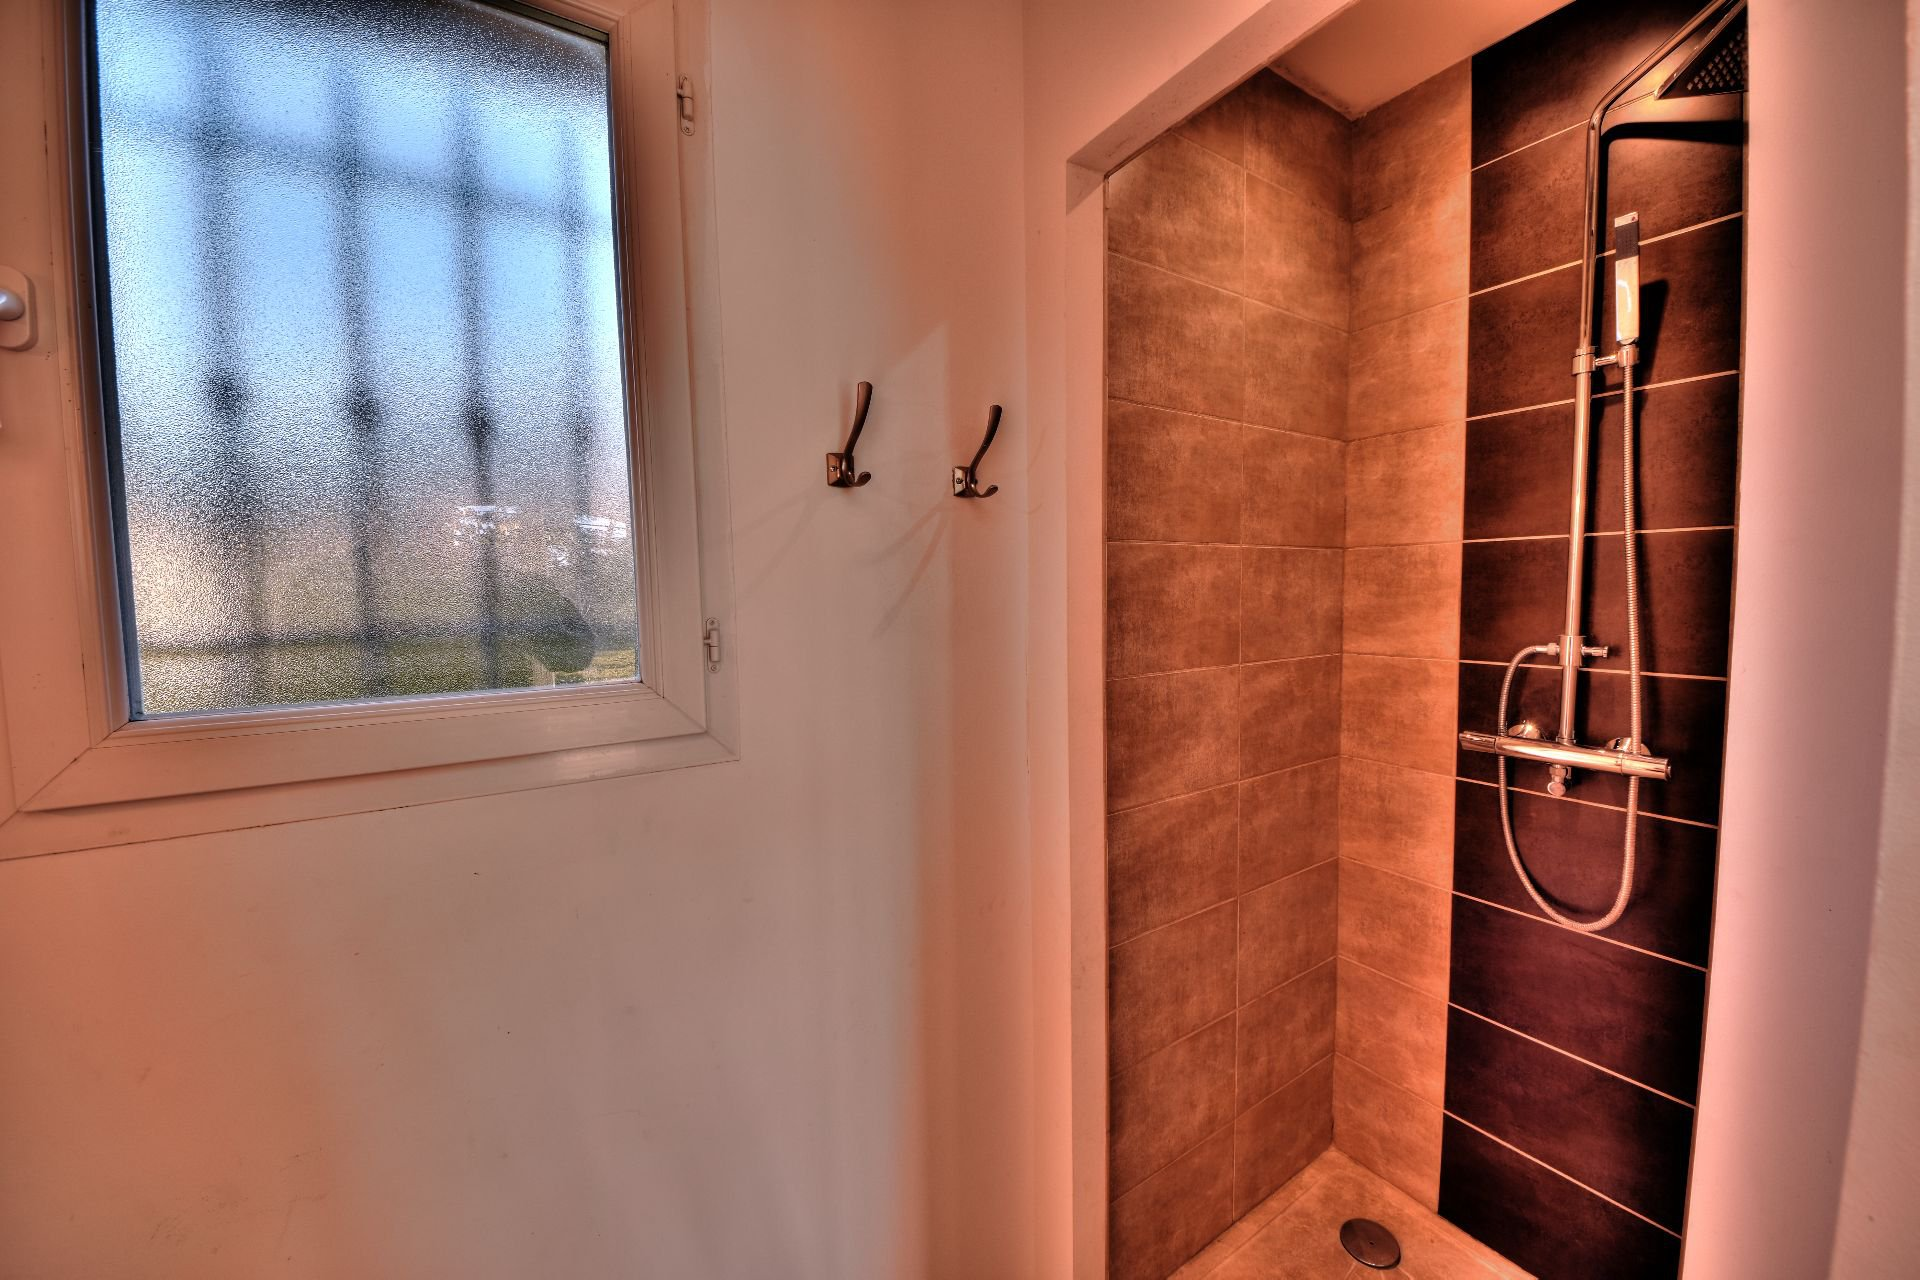 Shower room in rdc of the bastide 4 rooms with swimming pool Aups, Var, Provence